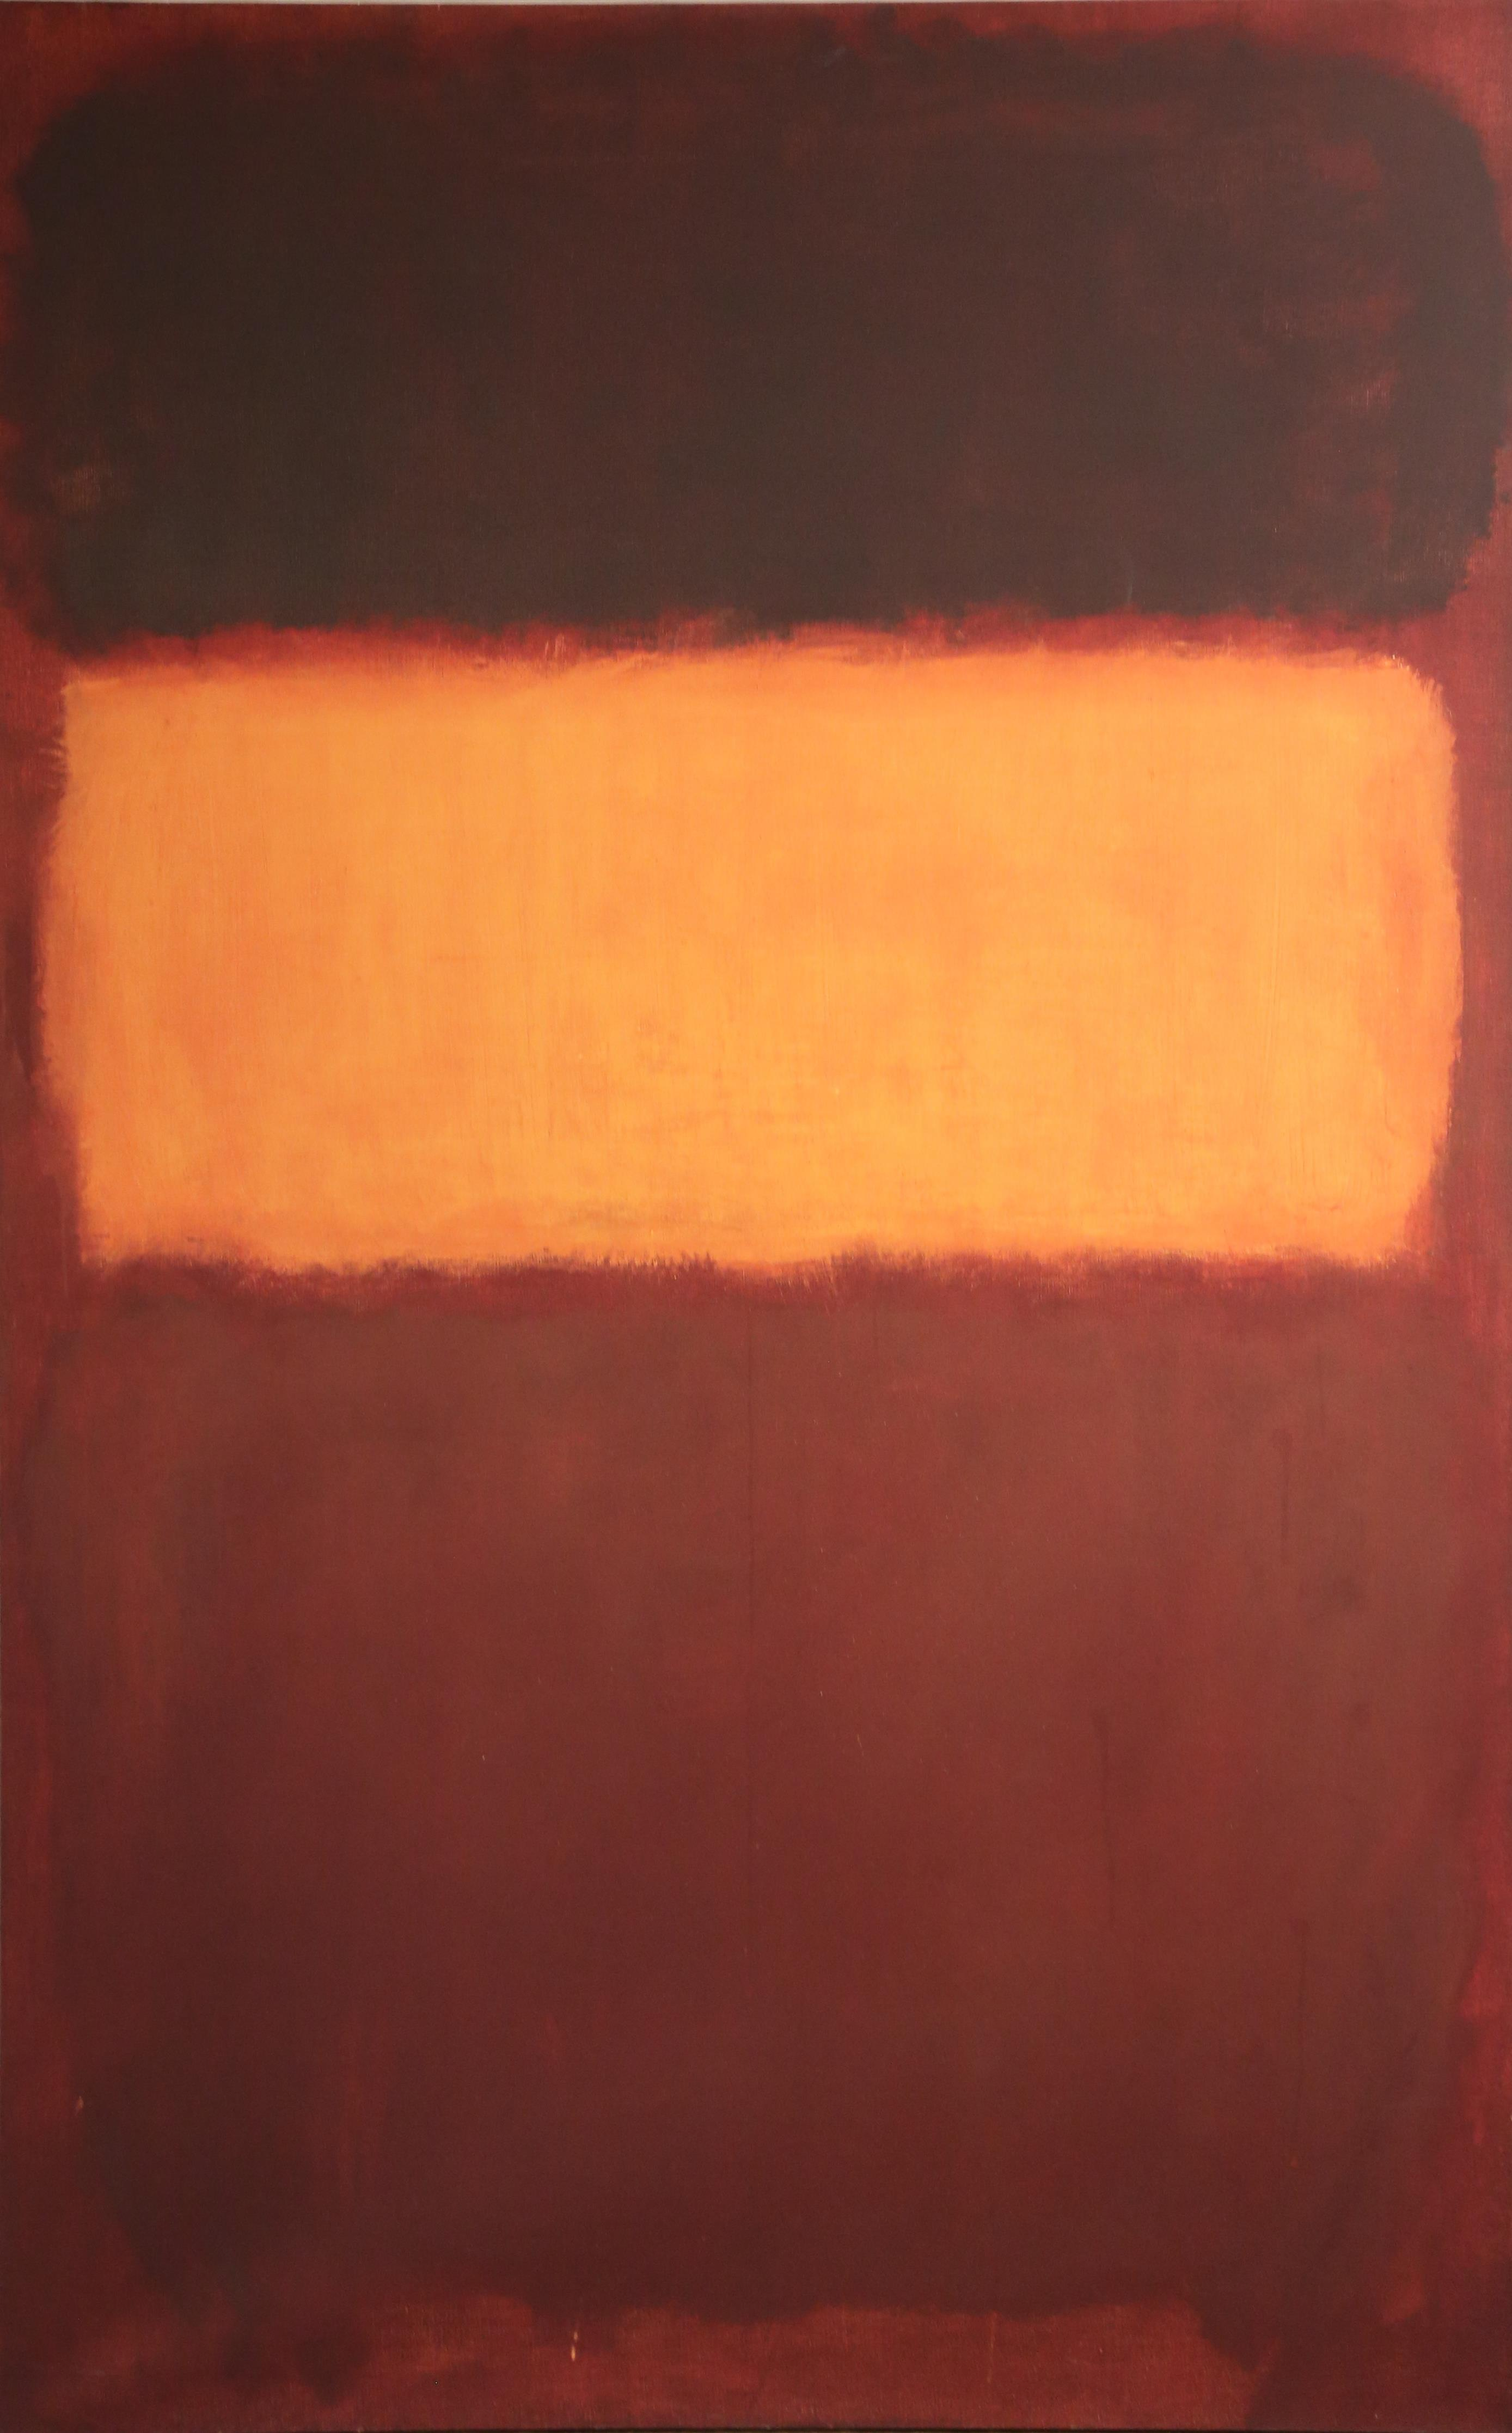 Red Orange Or Yellow Paintings